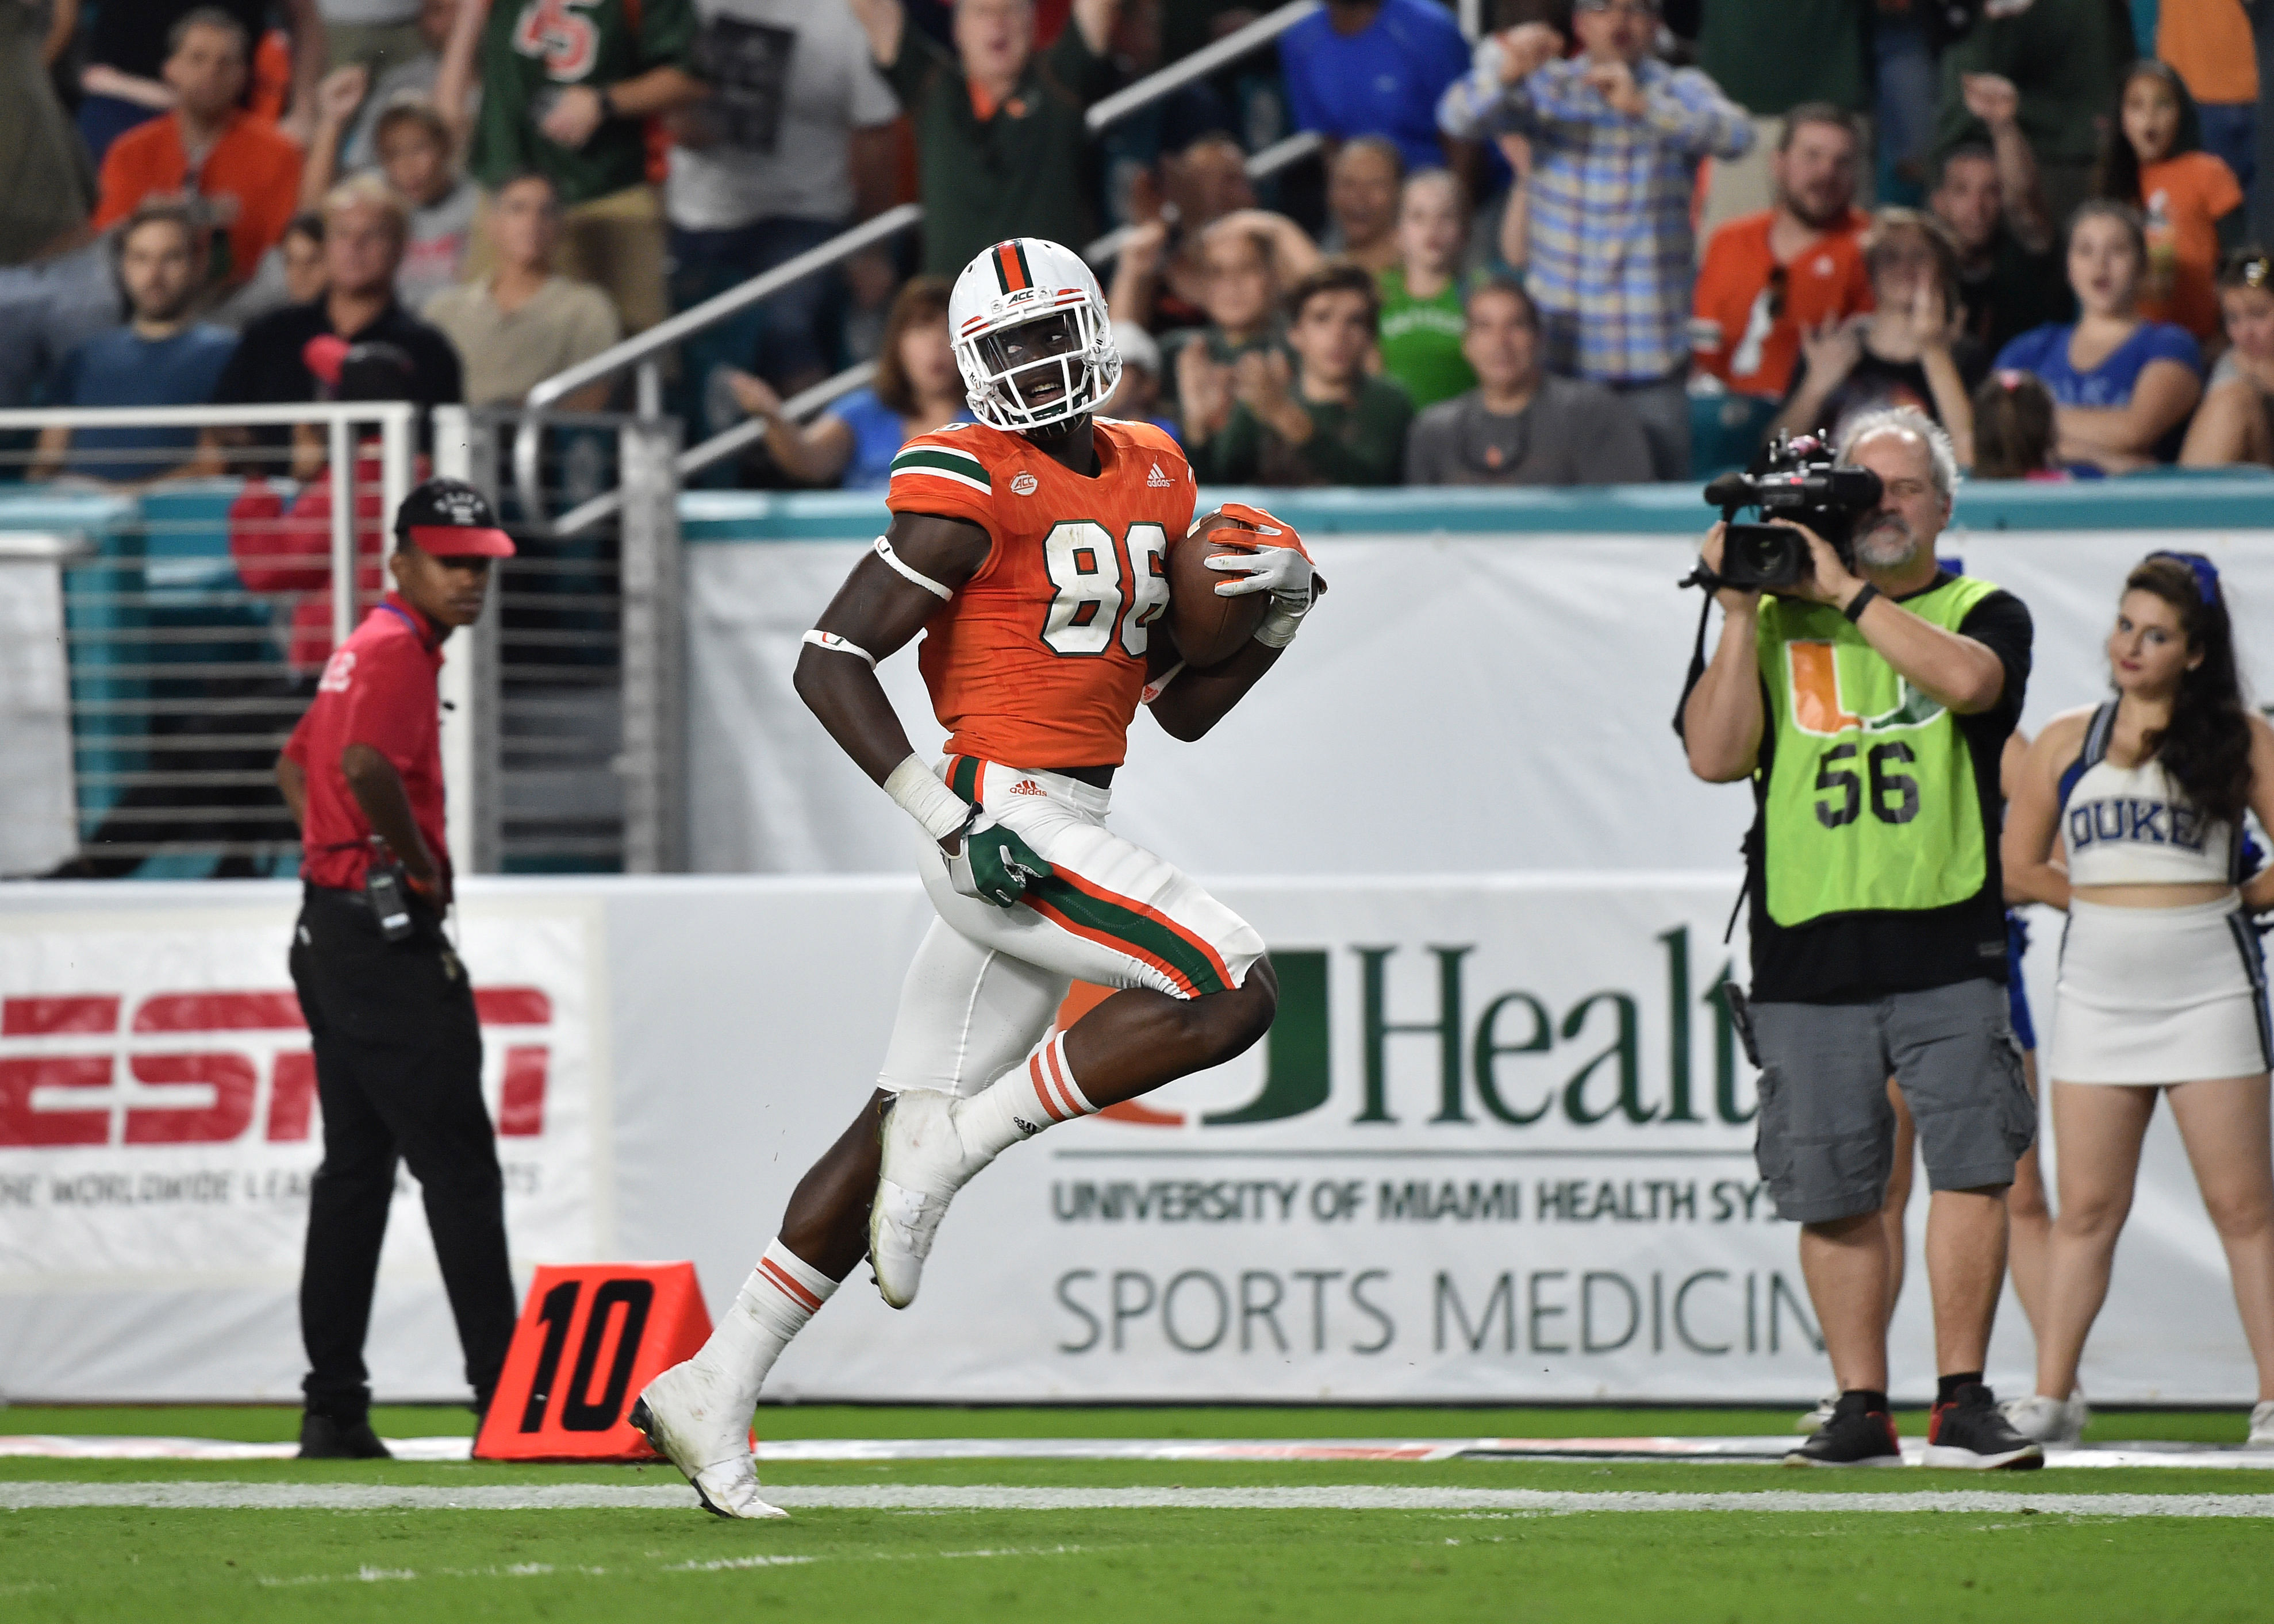 Nov 26, 2016; Miami Gardens, FL, USA; Miami Hurricanes tight end David Njoku (86) runs for a touchdown during the second half against Duke Blue Devils at Hard Rock Stadium. Miami won 40-21. Mandatory Credit: Steve Mitchell-USA TODAY Sports